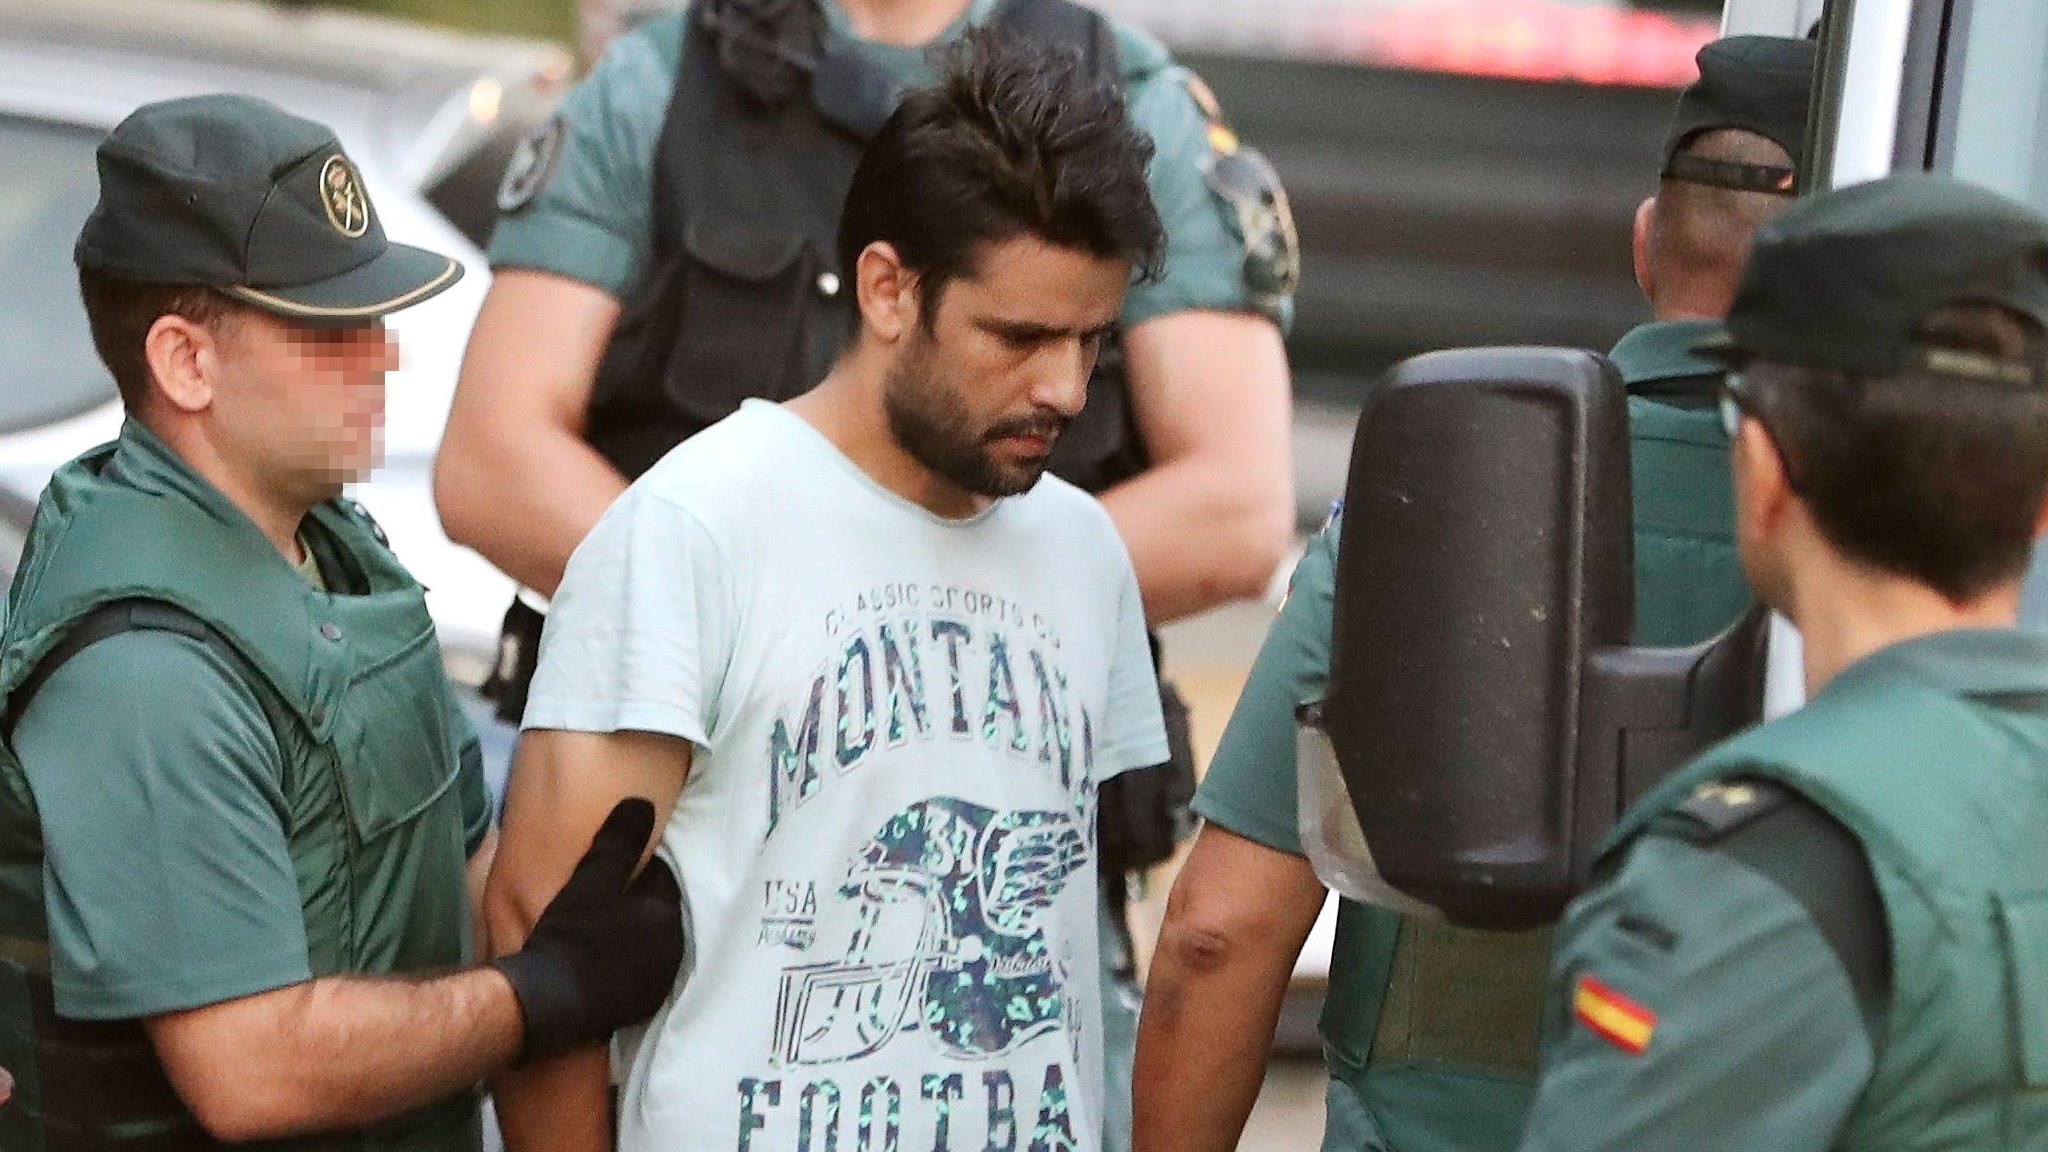 Barcelona attack: Surviving suspects face judge